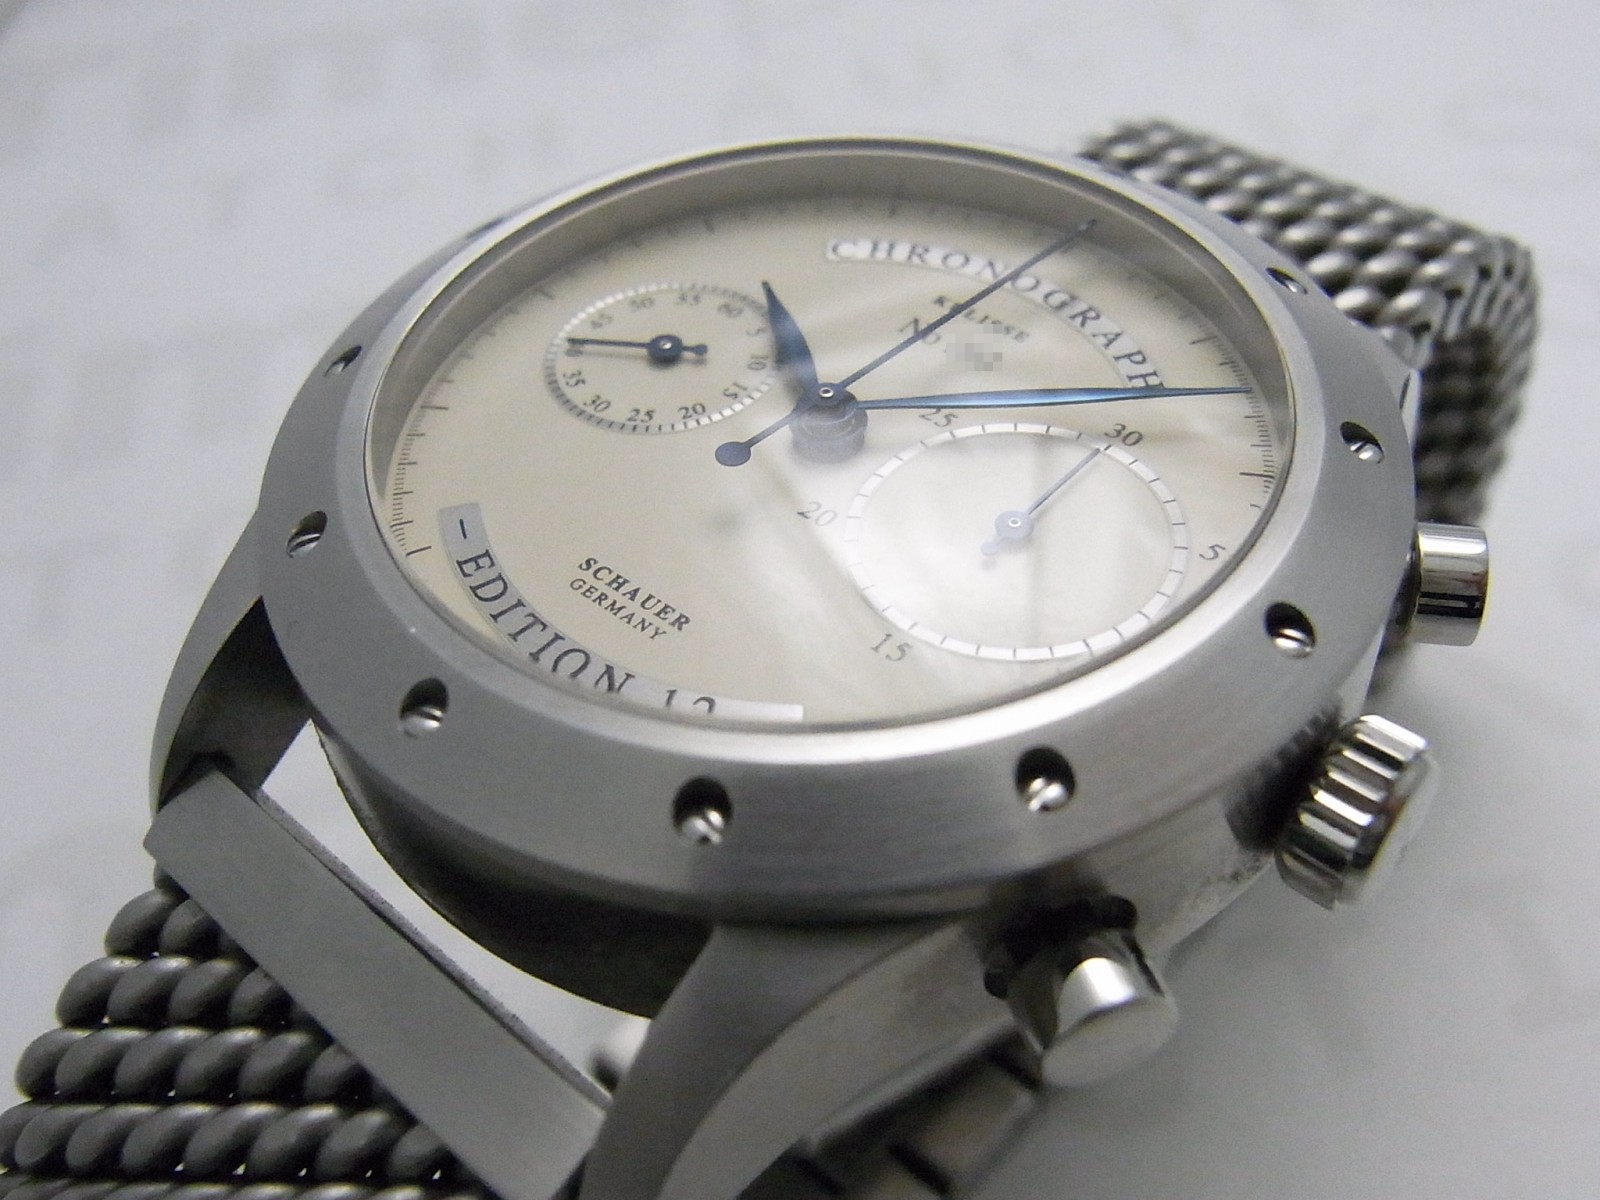 prodiver stowa this the watches img sold review enthusiasts schauer watch was